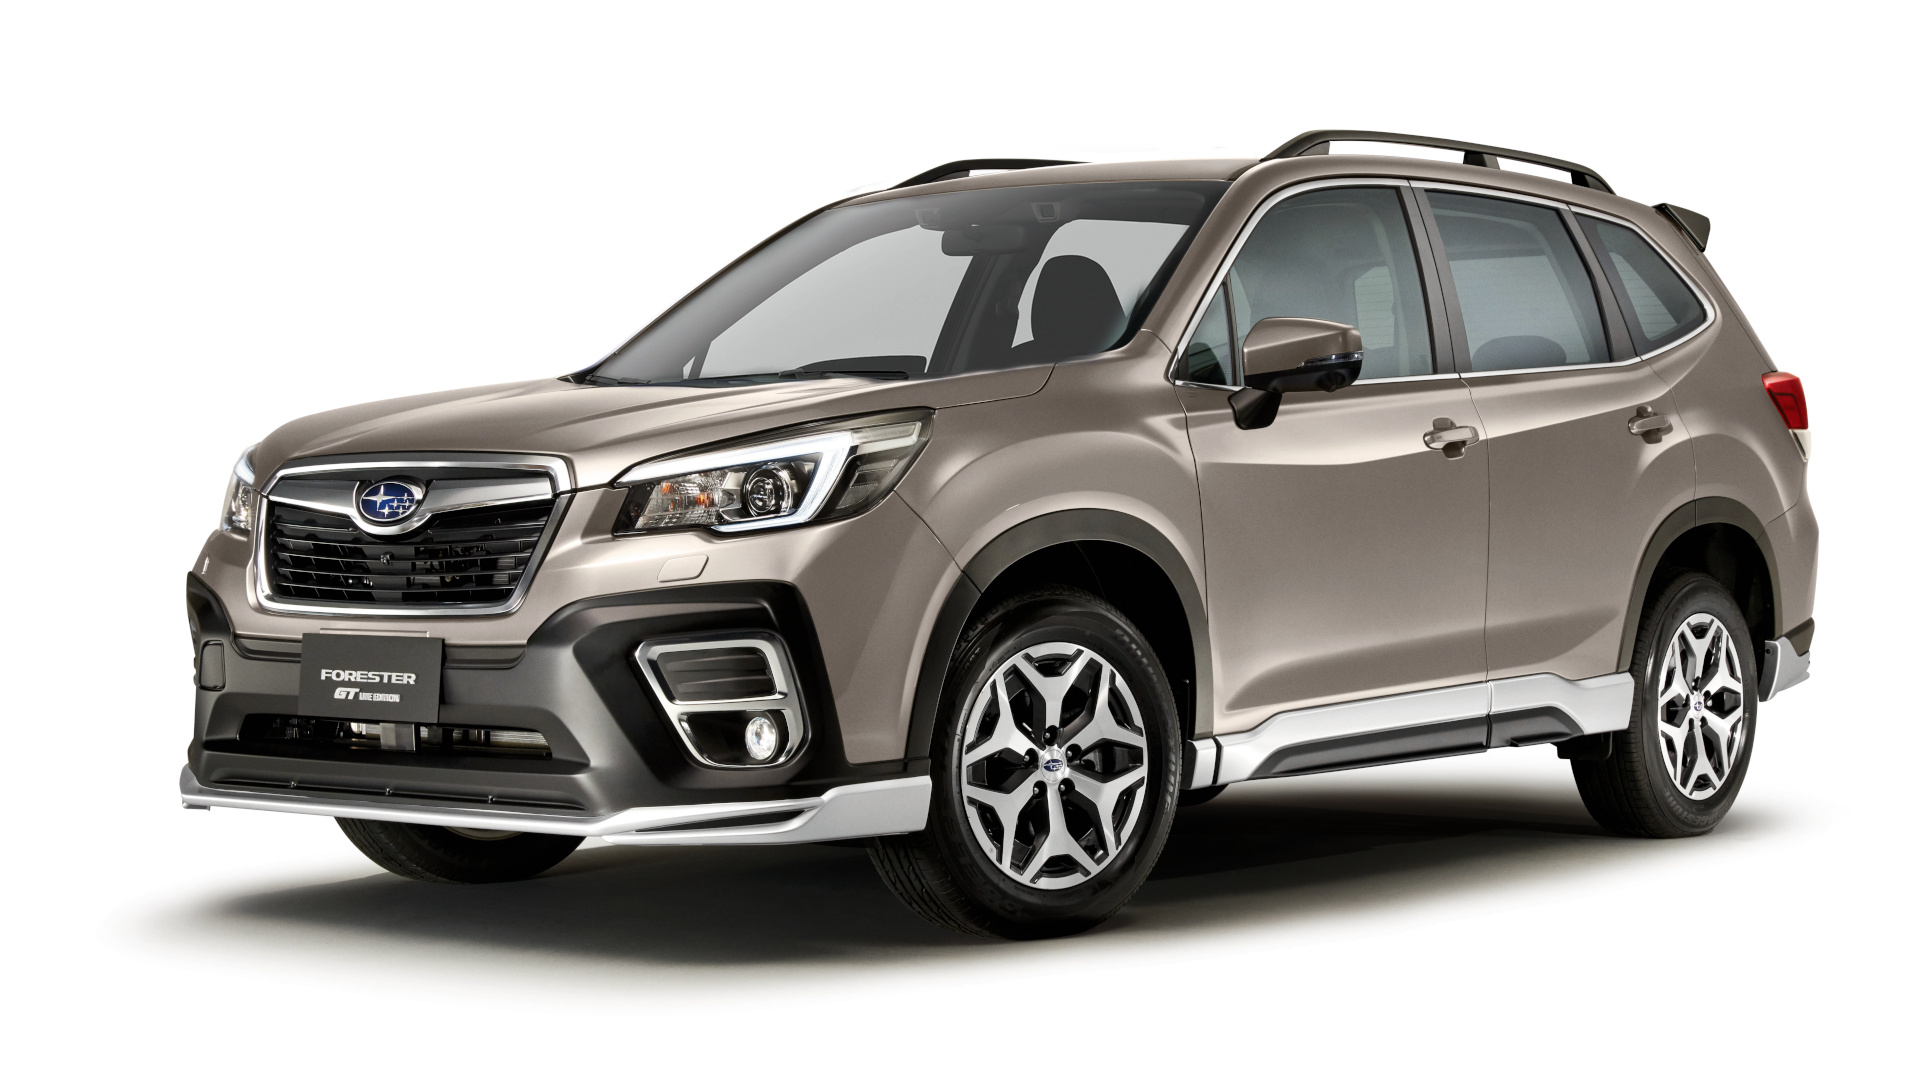 The Subaru Forester GT Lite Edition